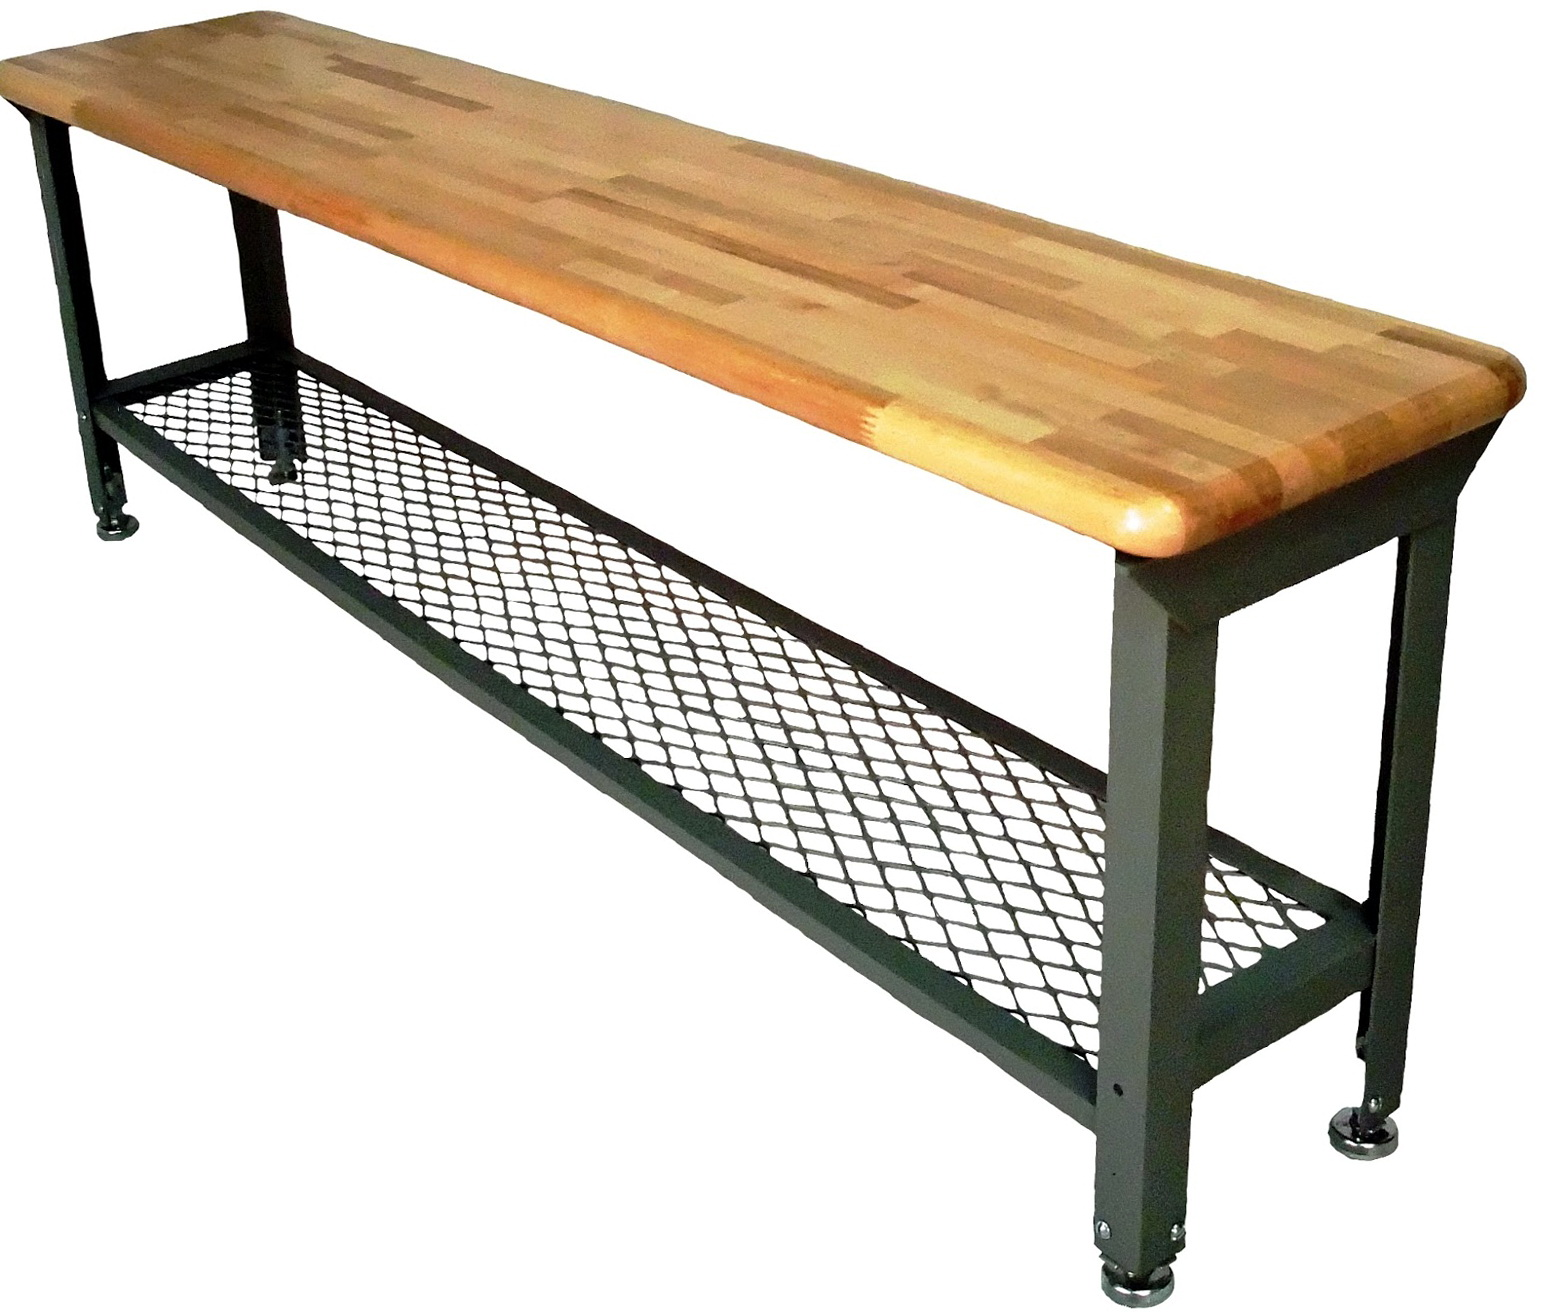 Locker Room Bench Pedestal